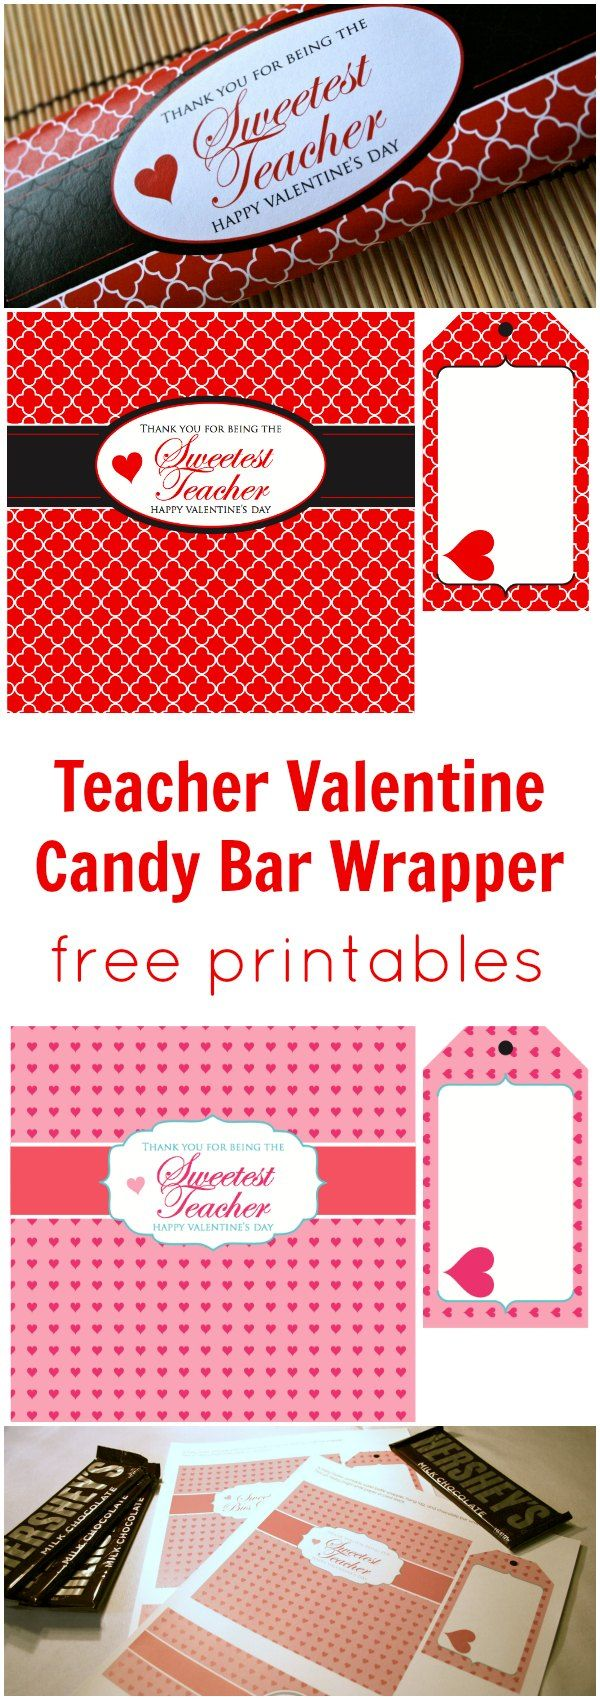 valentine candy bar wrapper templates - the 25 best chocolate bar wrappers ideas on pinterest